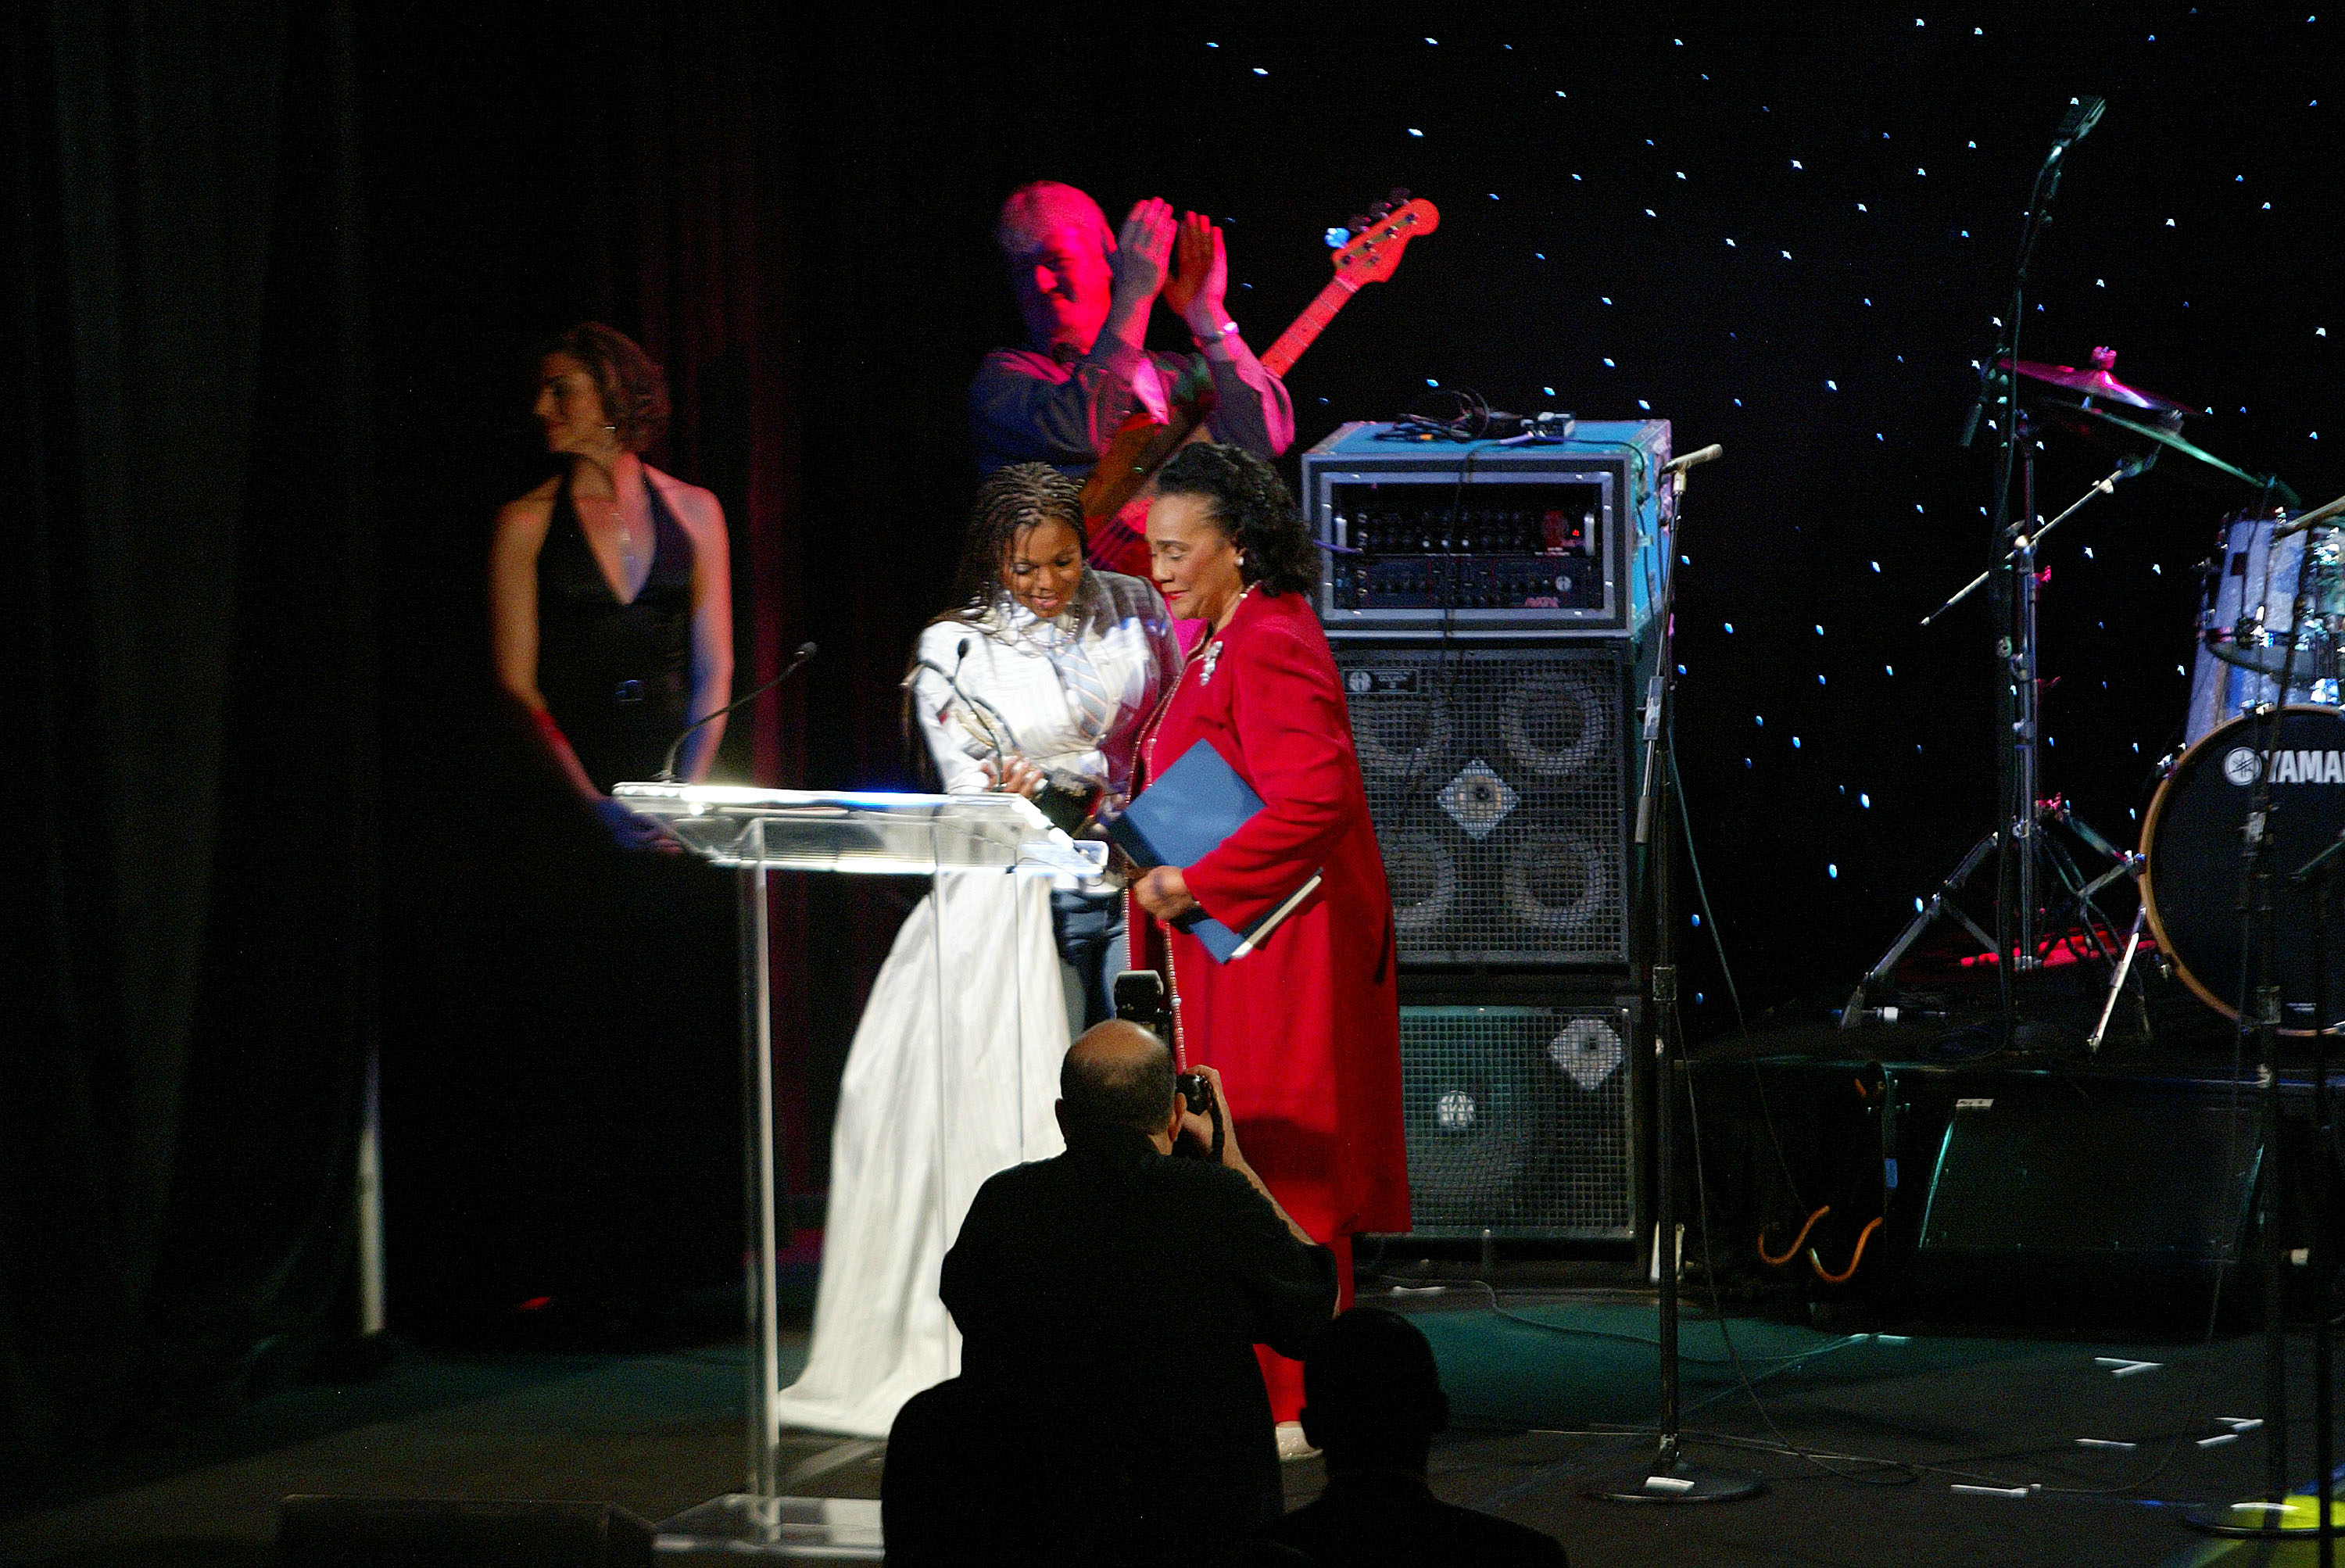 Coretta Scott King Is Introduced by Janet Jackson at the 2005 Hero Awards Gala (Photo by Annette Brown/Getty Images)